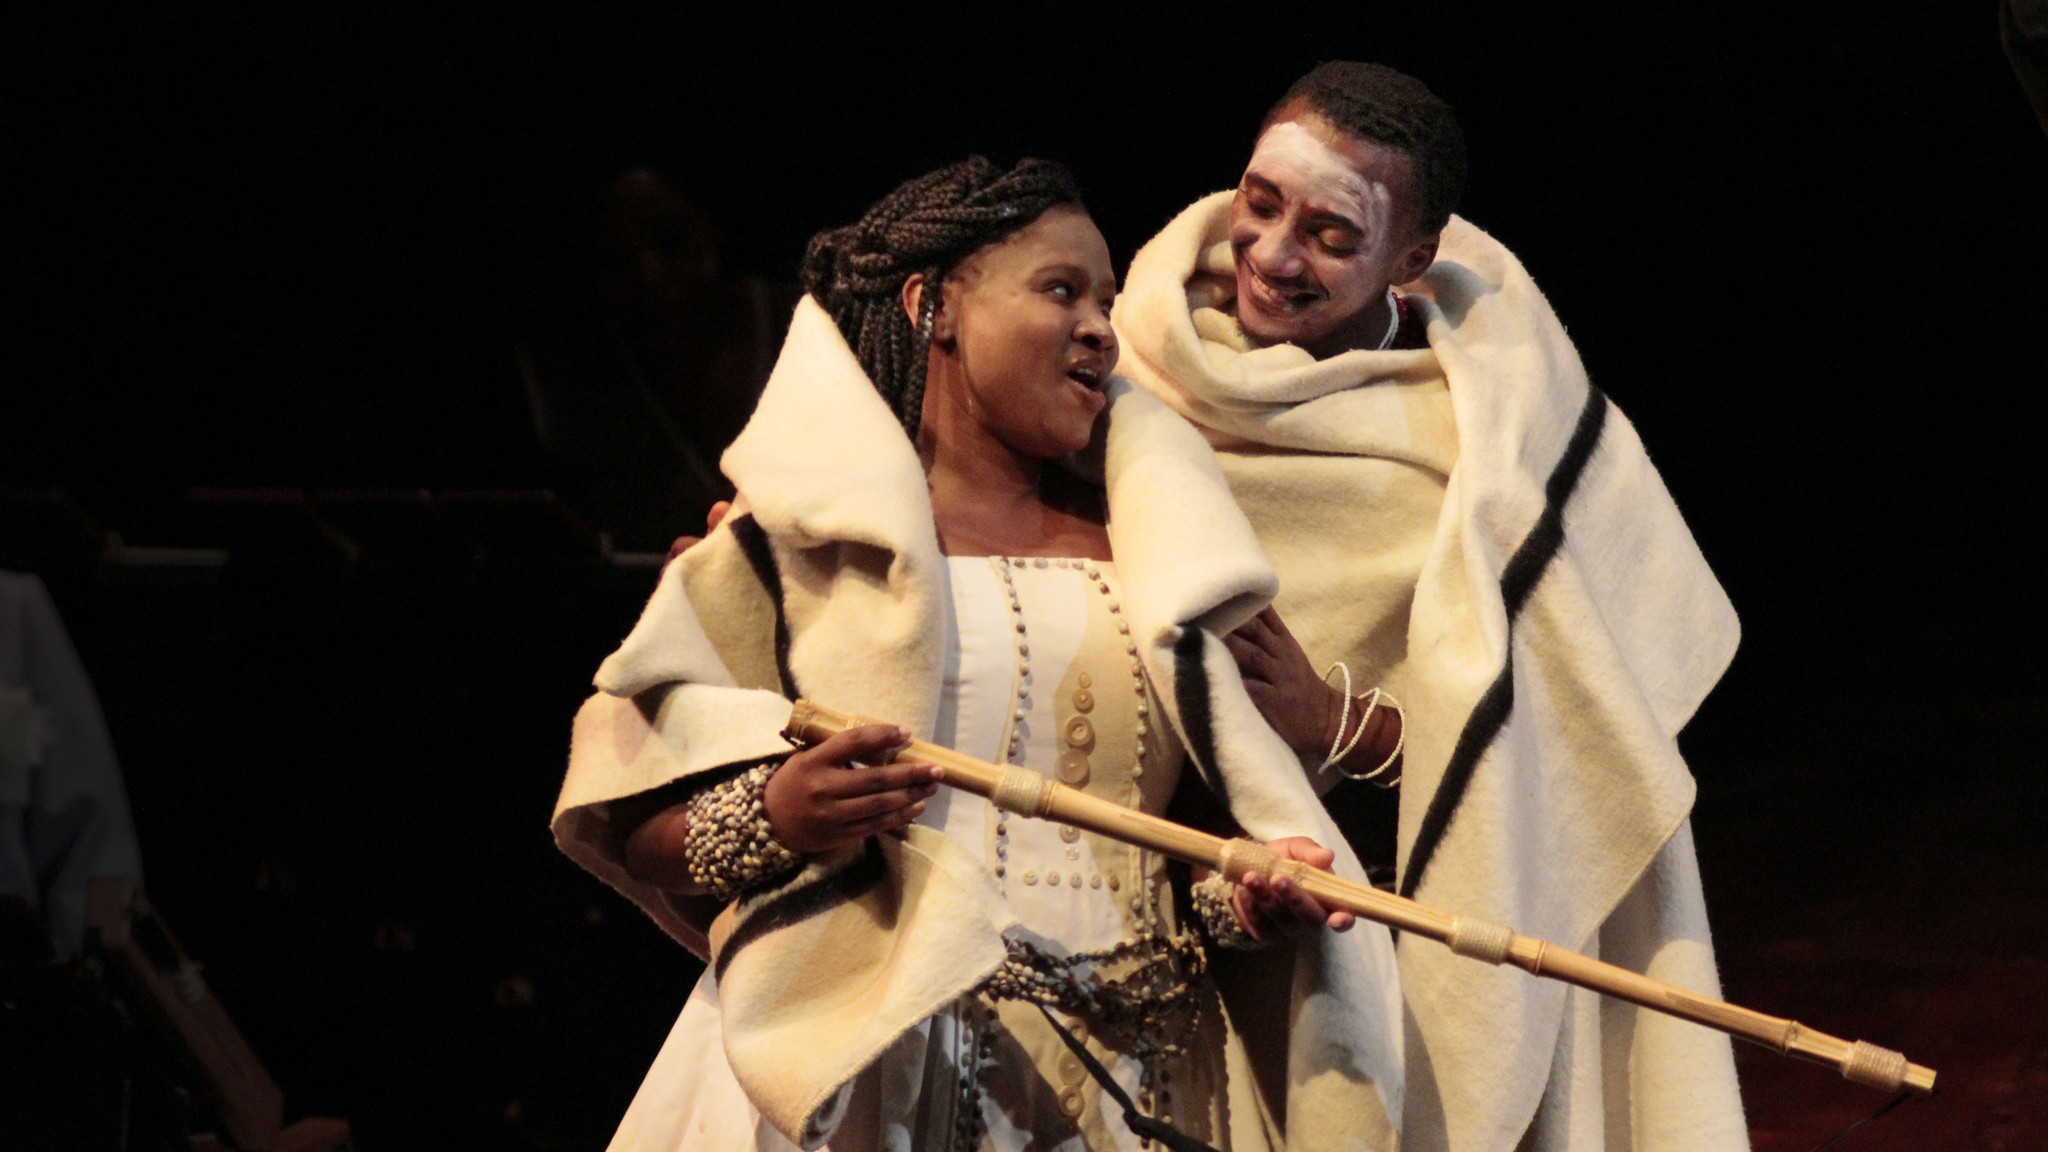 A 'Flute' from Africa renews Mozart's musical magic